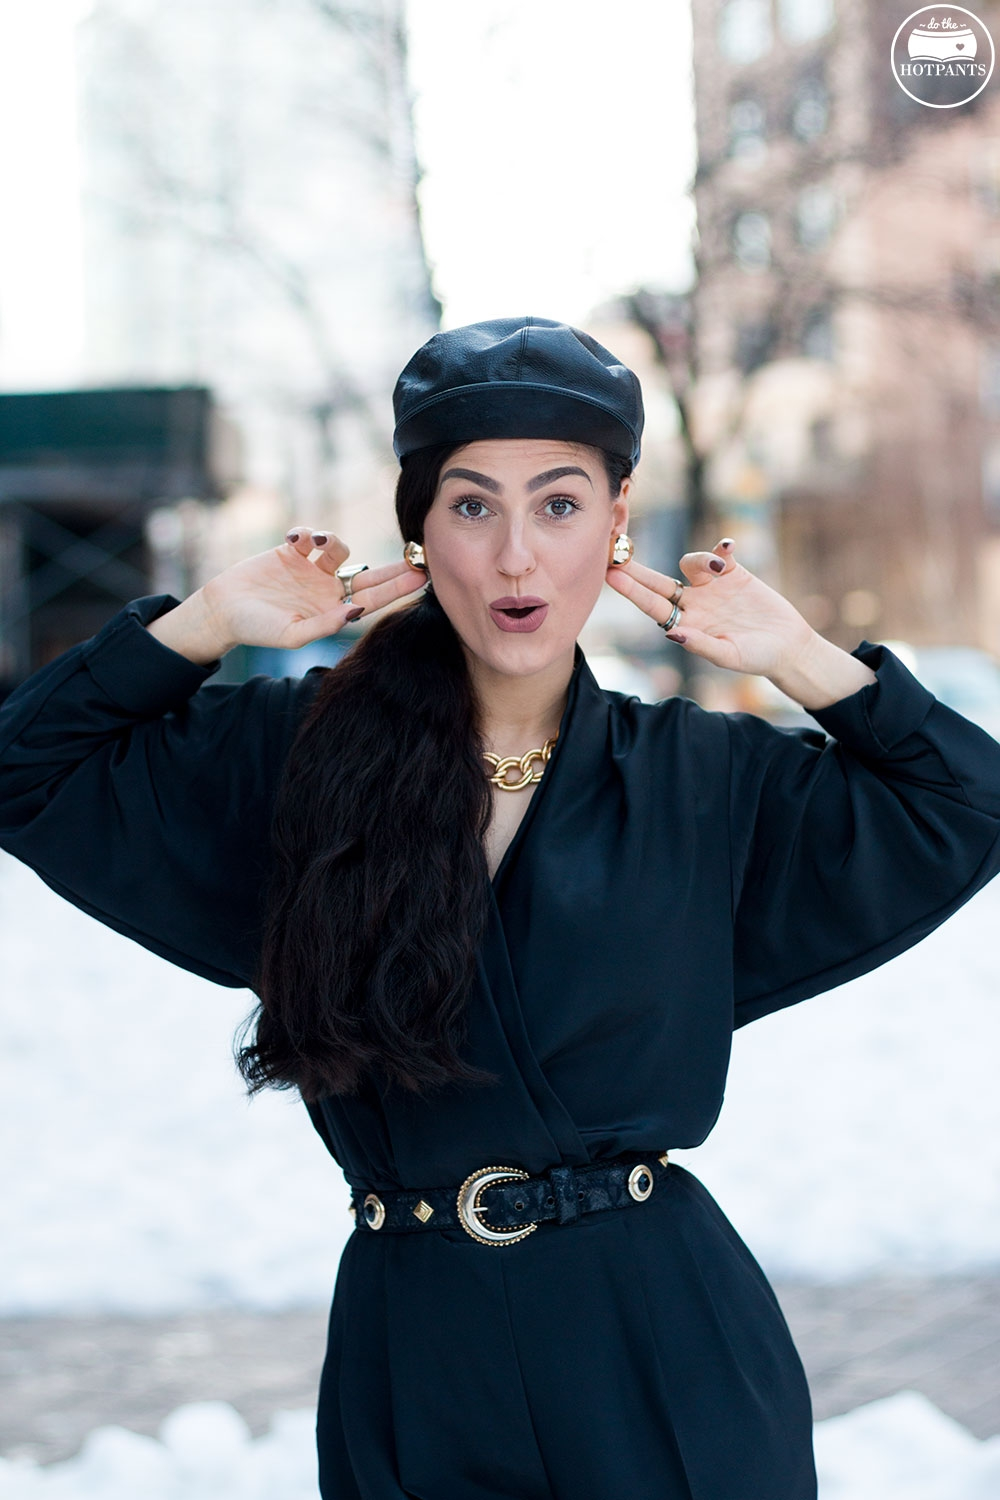 Do The Hotpants Dana Suchow Black Goth Jumpsuit Side Ponytail Leather Hat Winter Fashion Woman in Snow IMG_6437